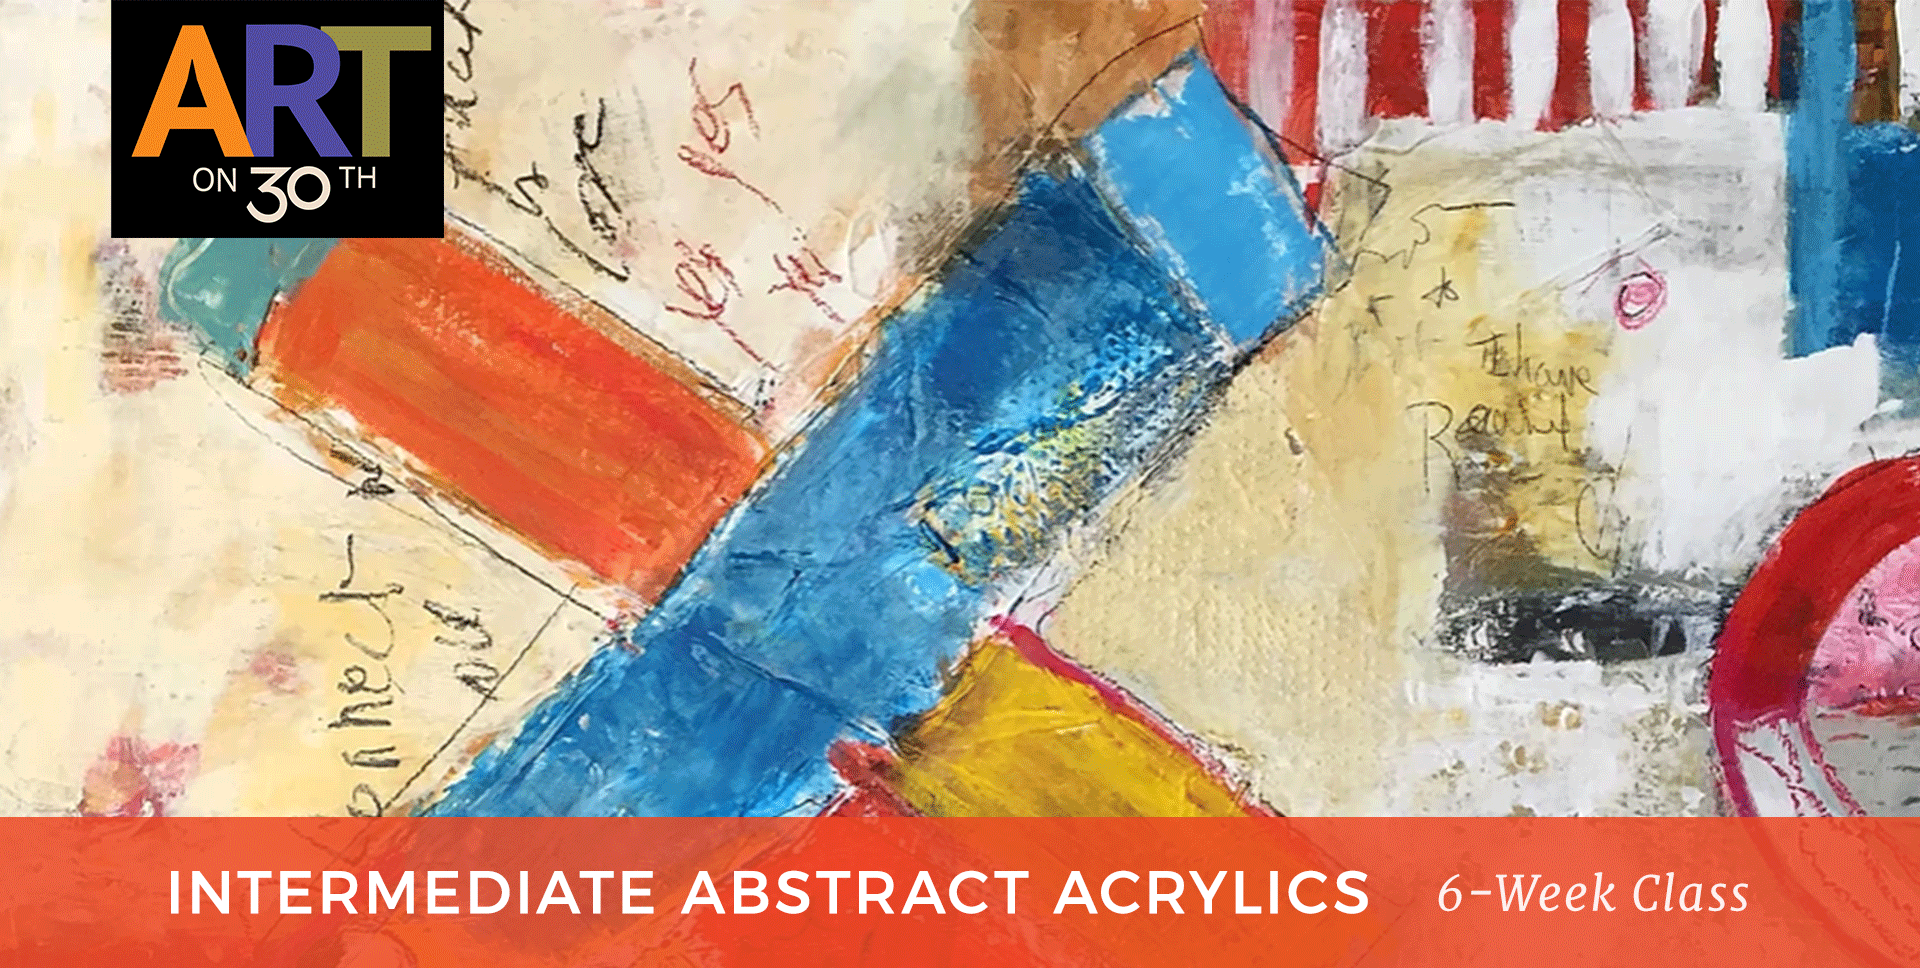 TUE AM - Intermediate Abstract Acrylic Painting with Kate Ashton